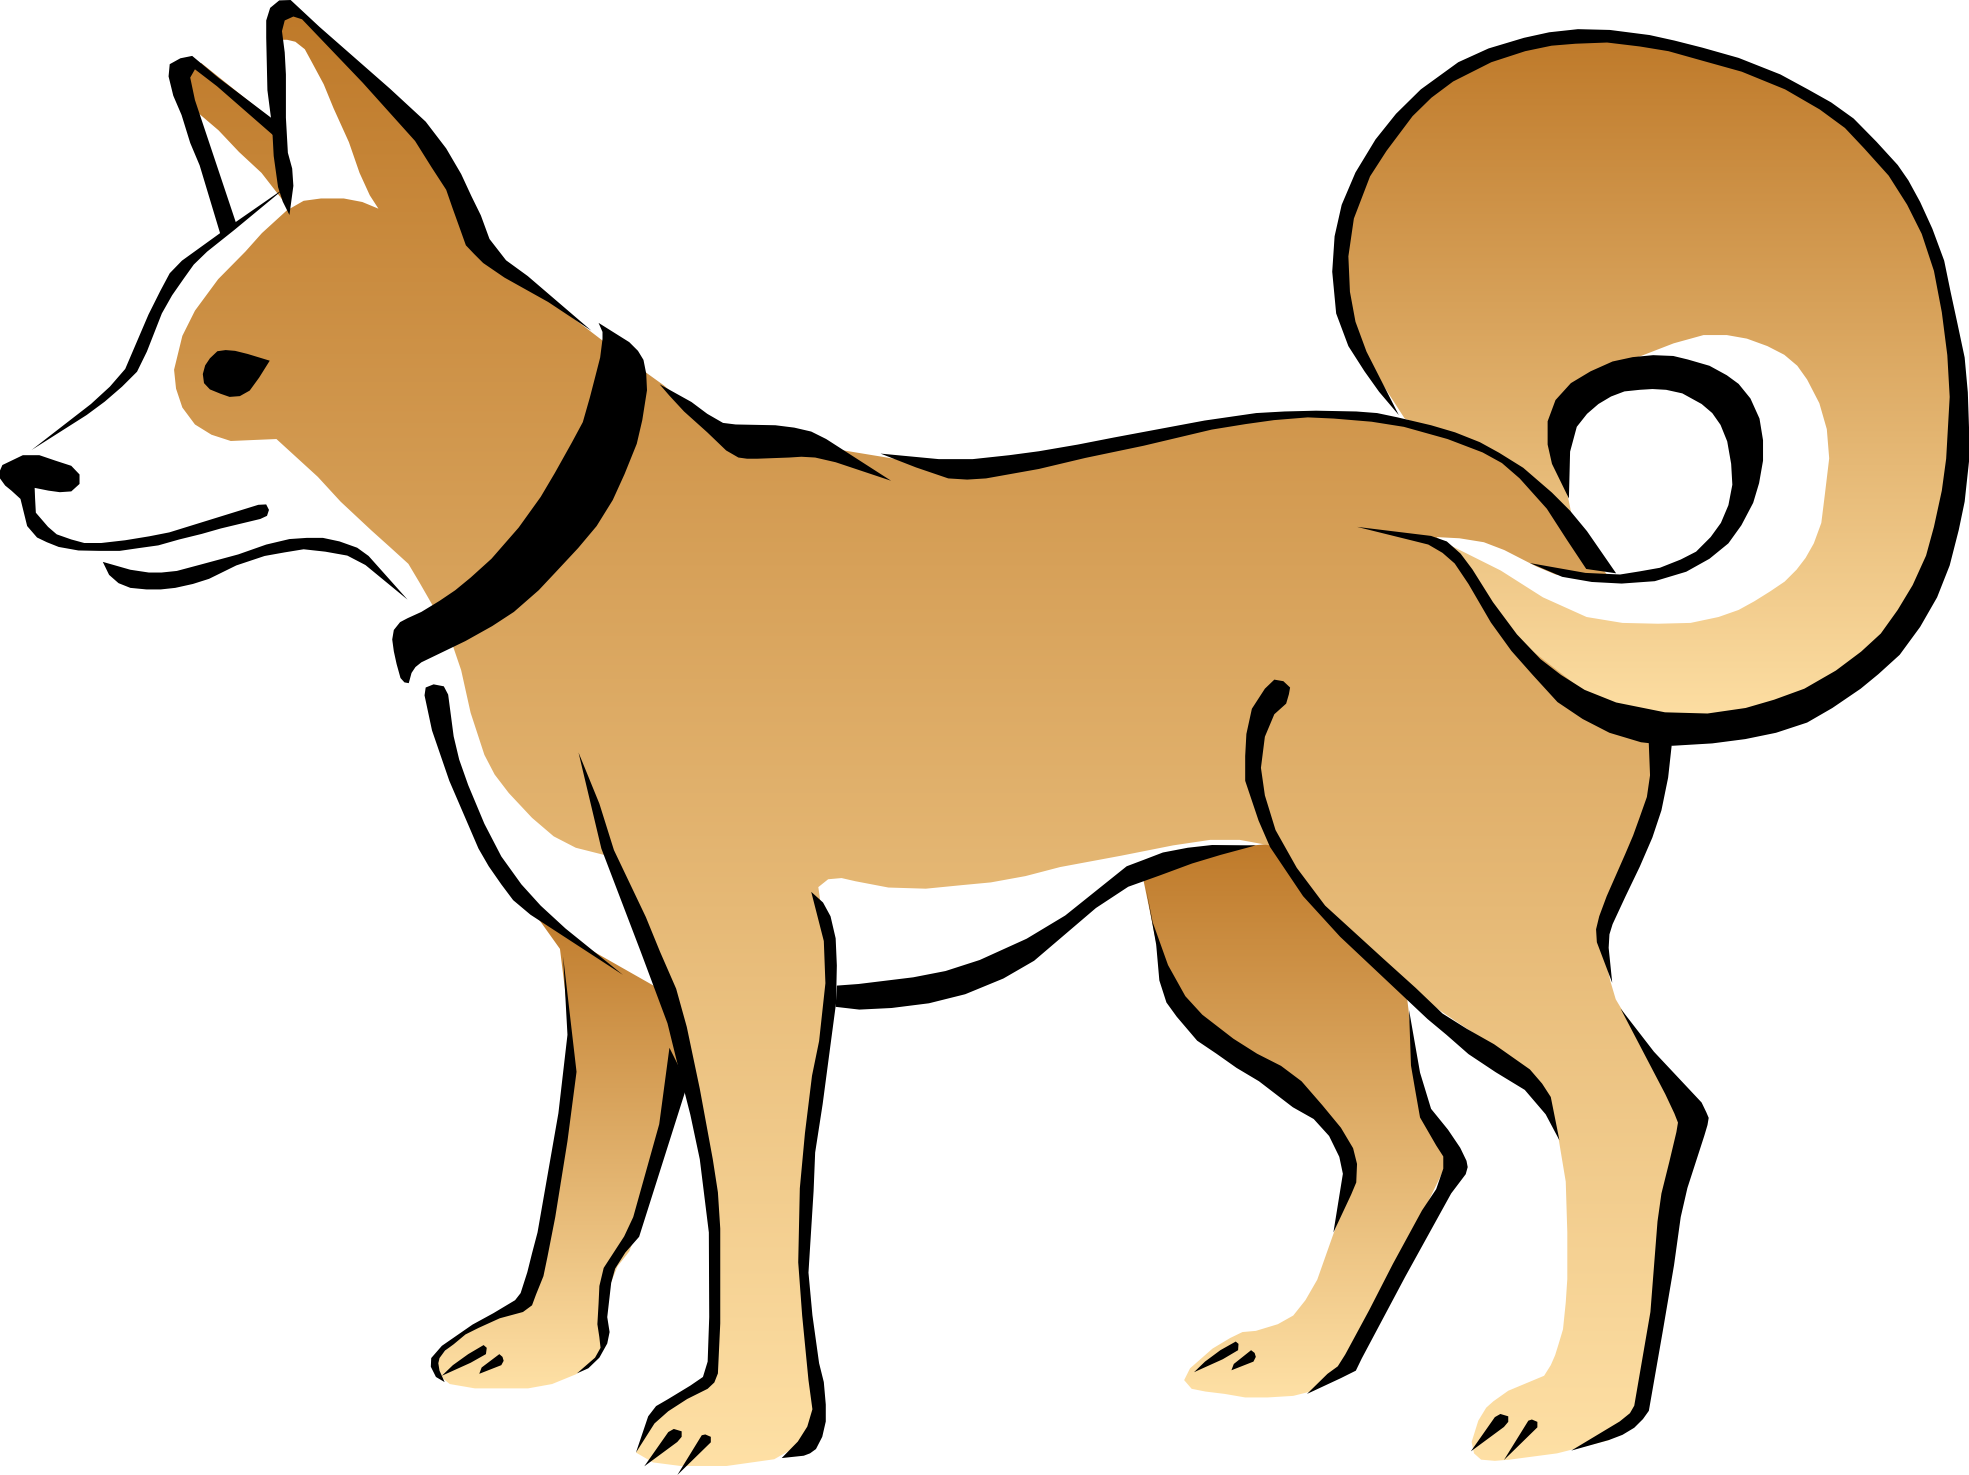 Puppy clipart 4 puppy. Dogs clip art and